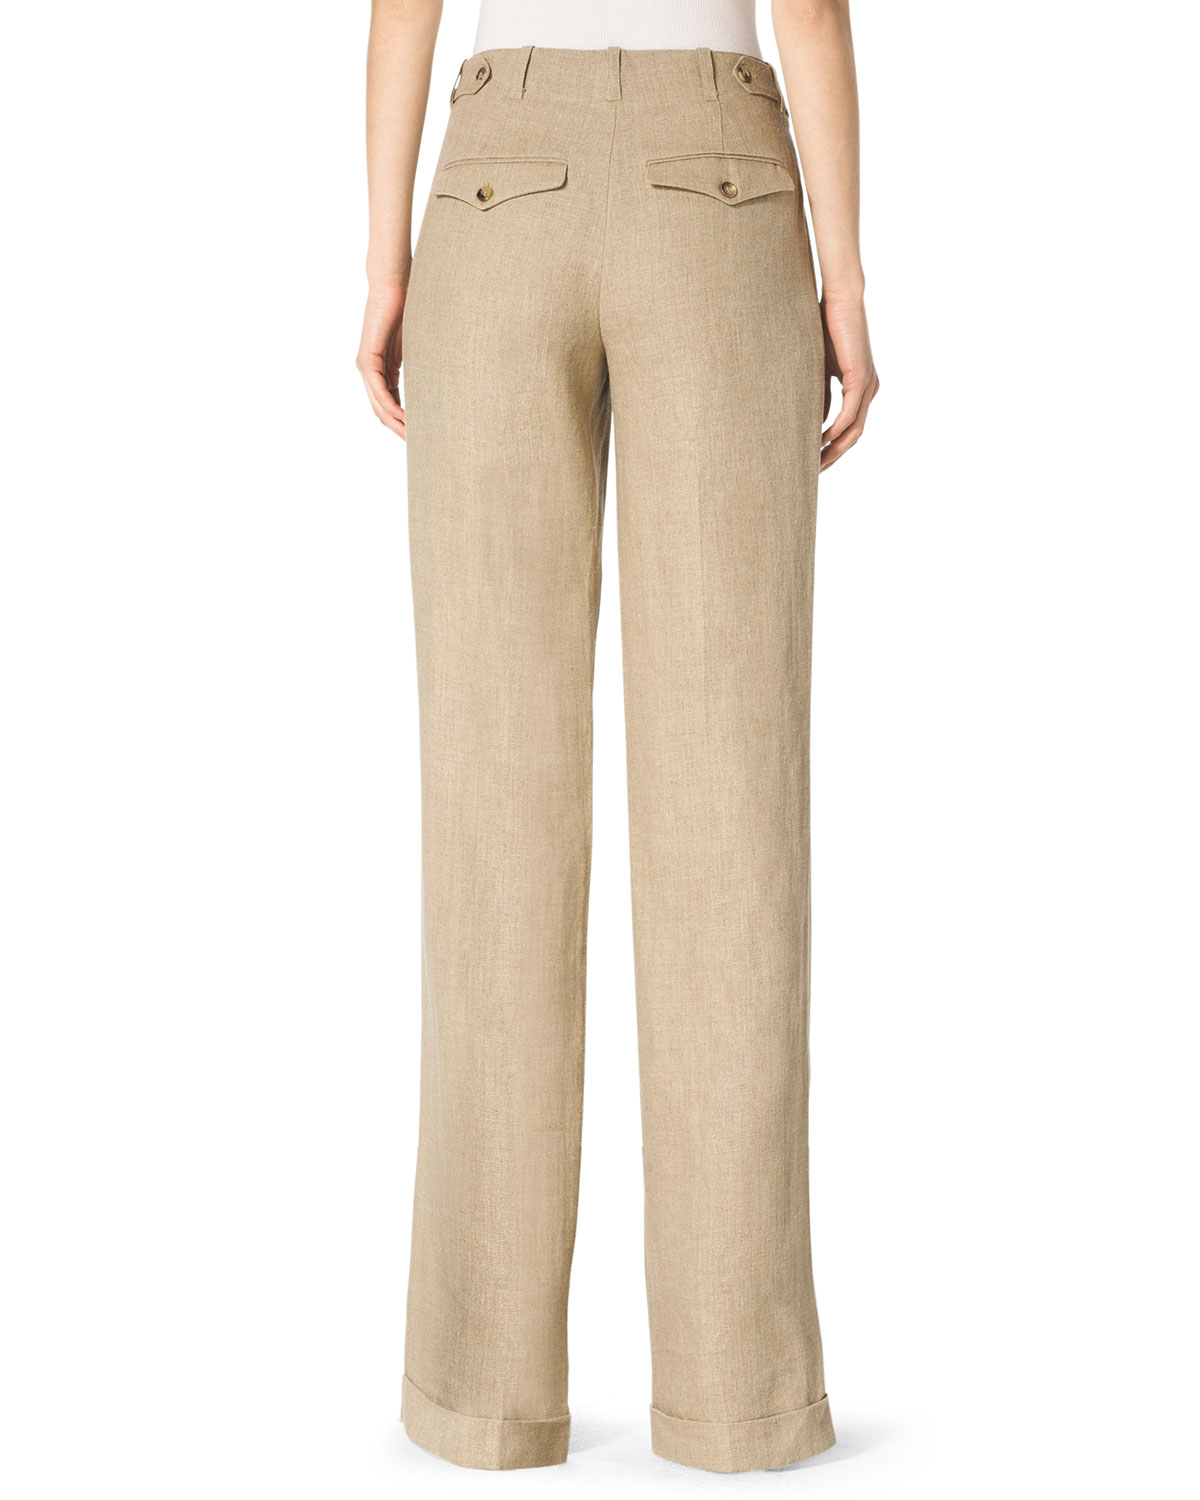 Find great deals on eBay for wide leg cuffed pants. Shop with confidence.